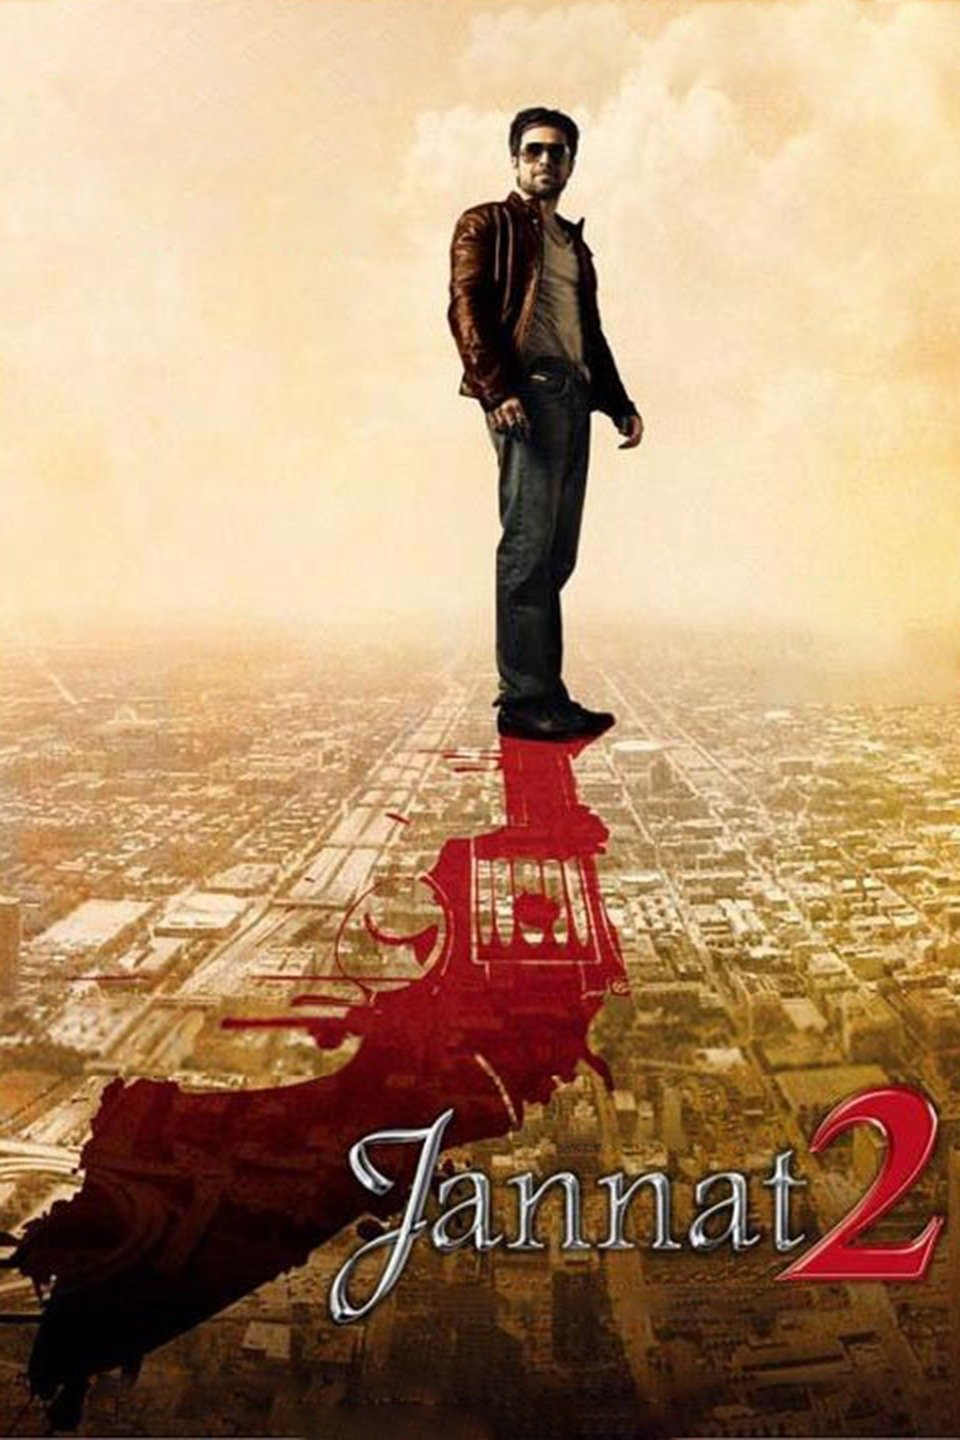 Jannat 2 2012 Hindi Full Movie HD Download Bluray